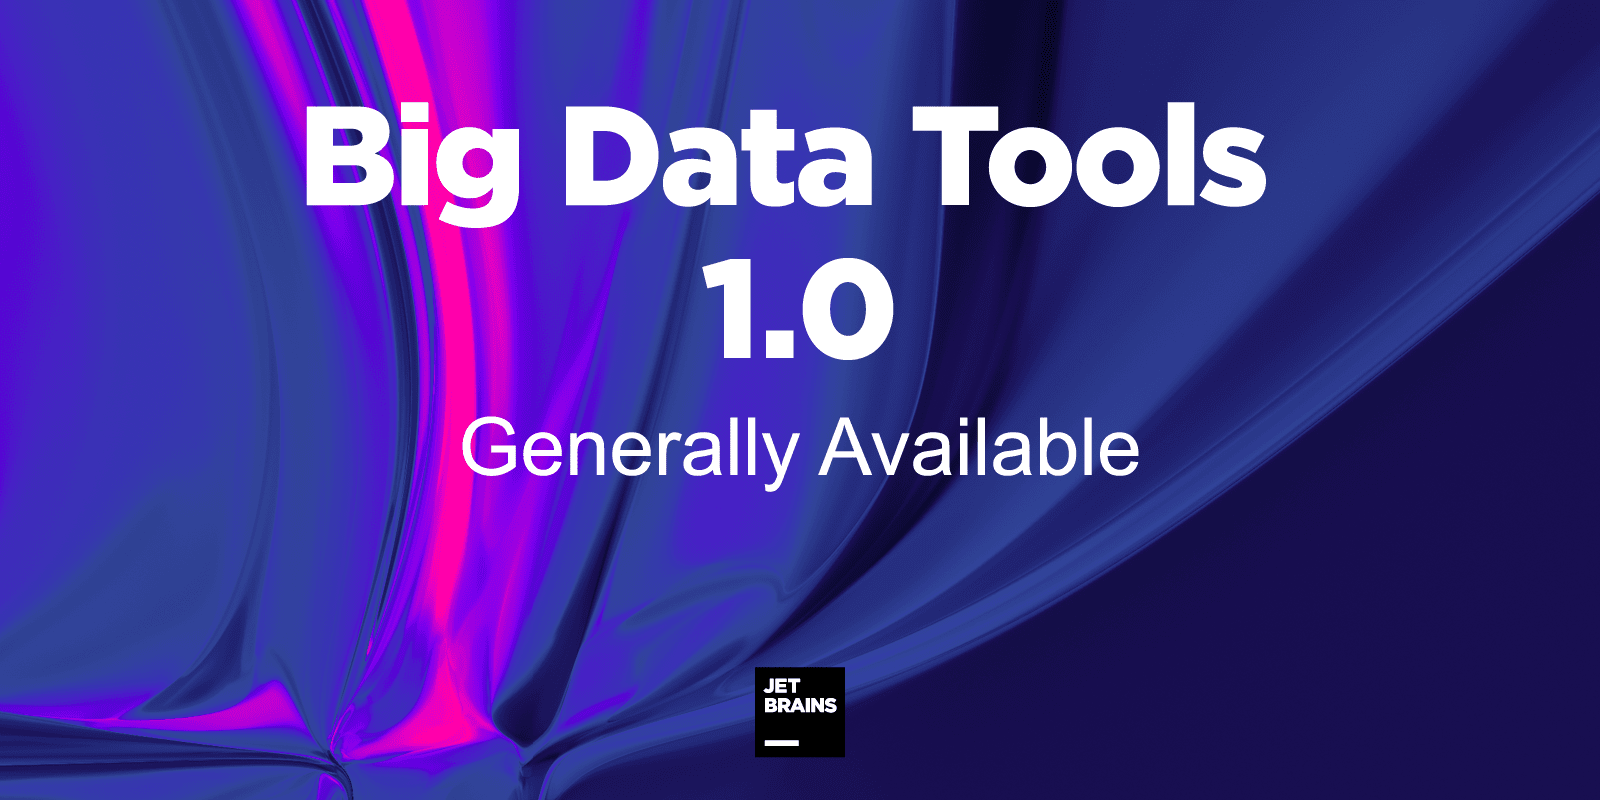 Big Data Tools 1.0 Generally Available